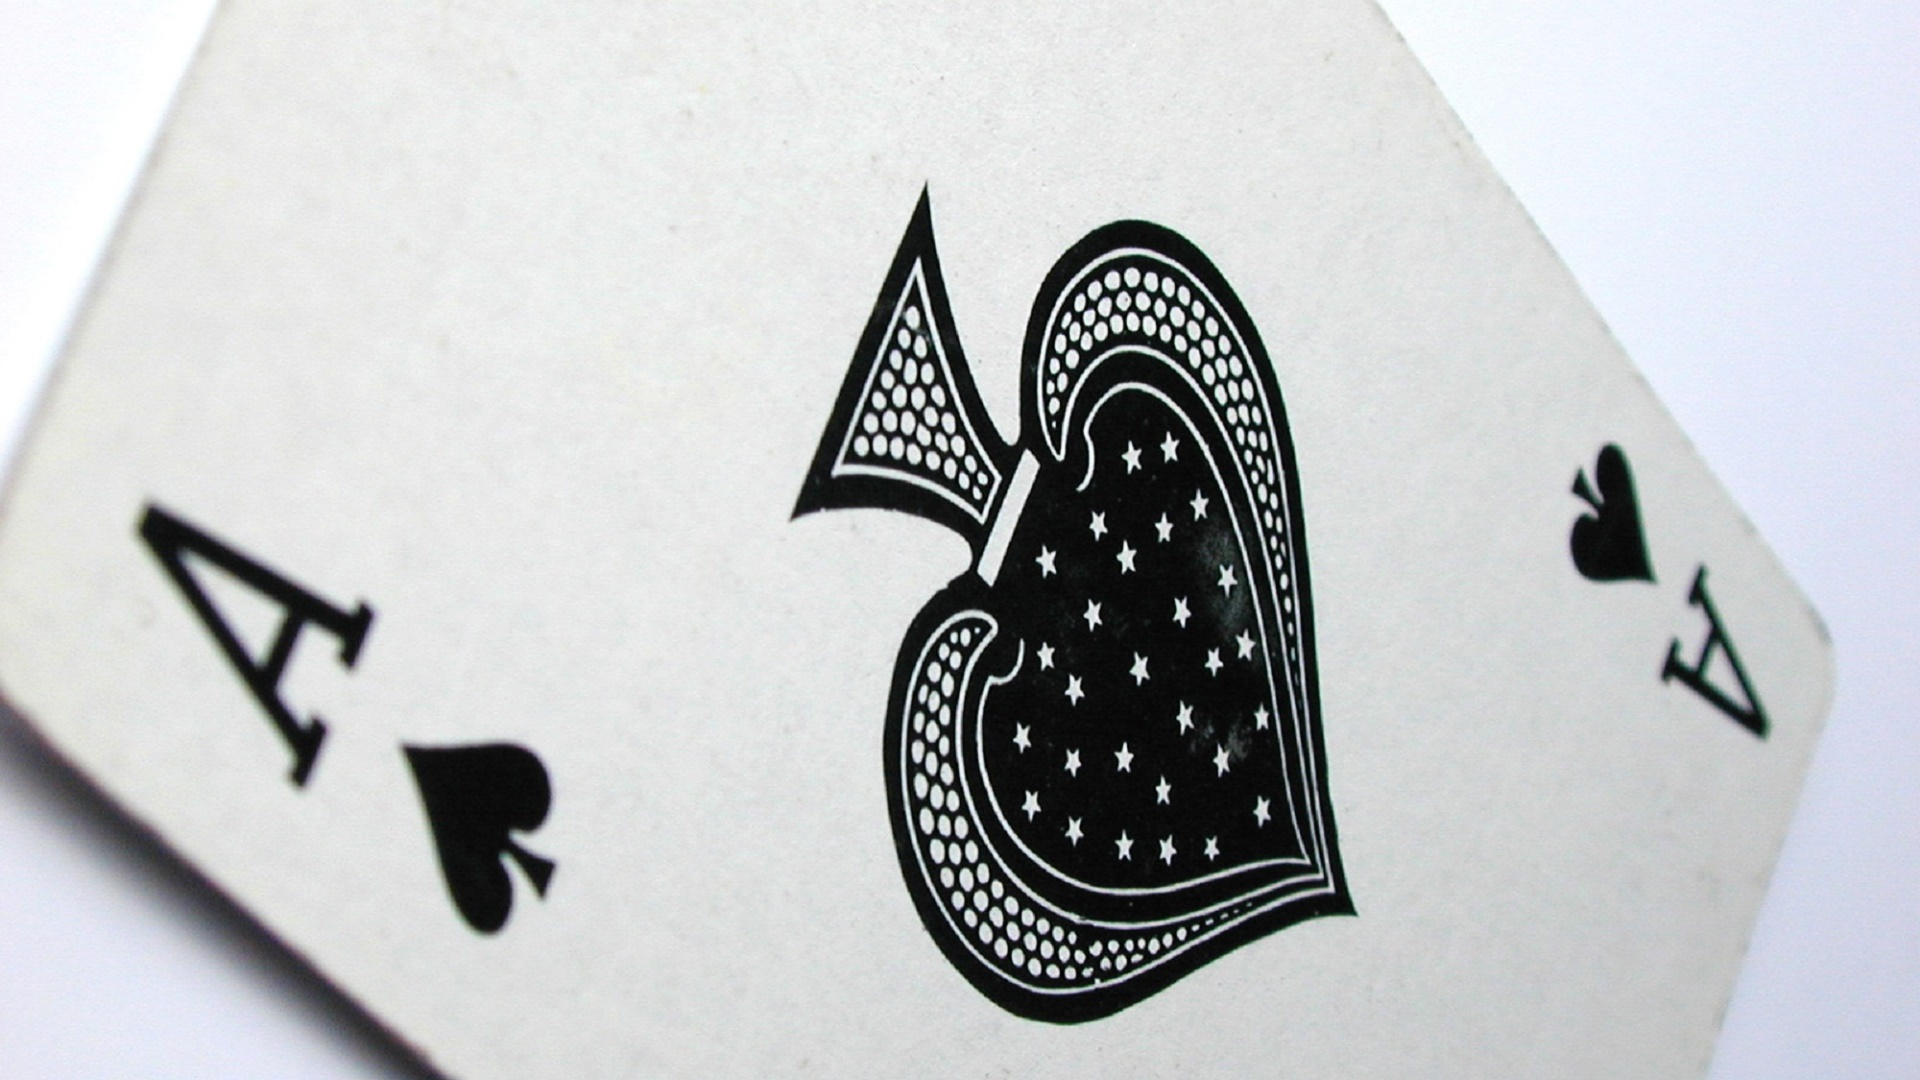 Ace of Spades card wallpaper